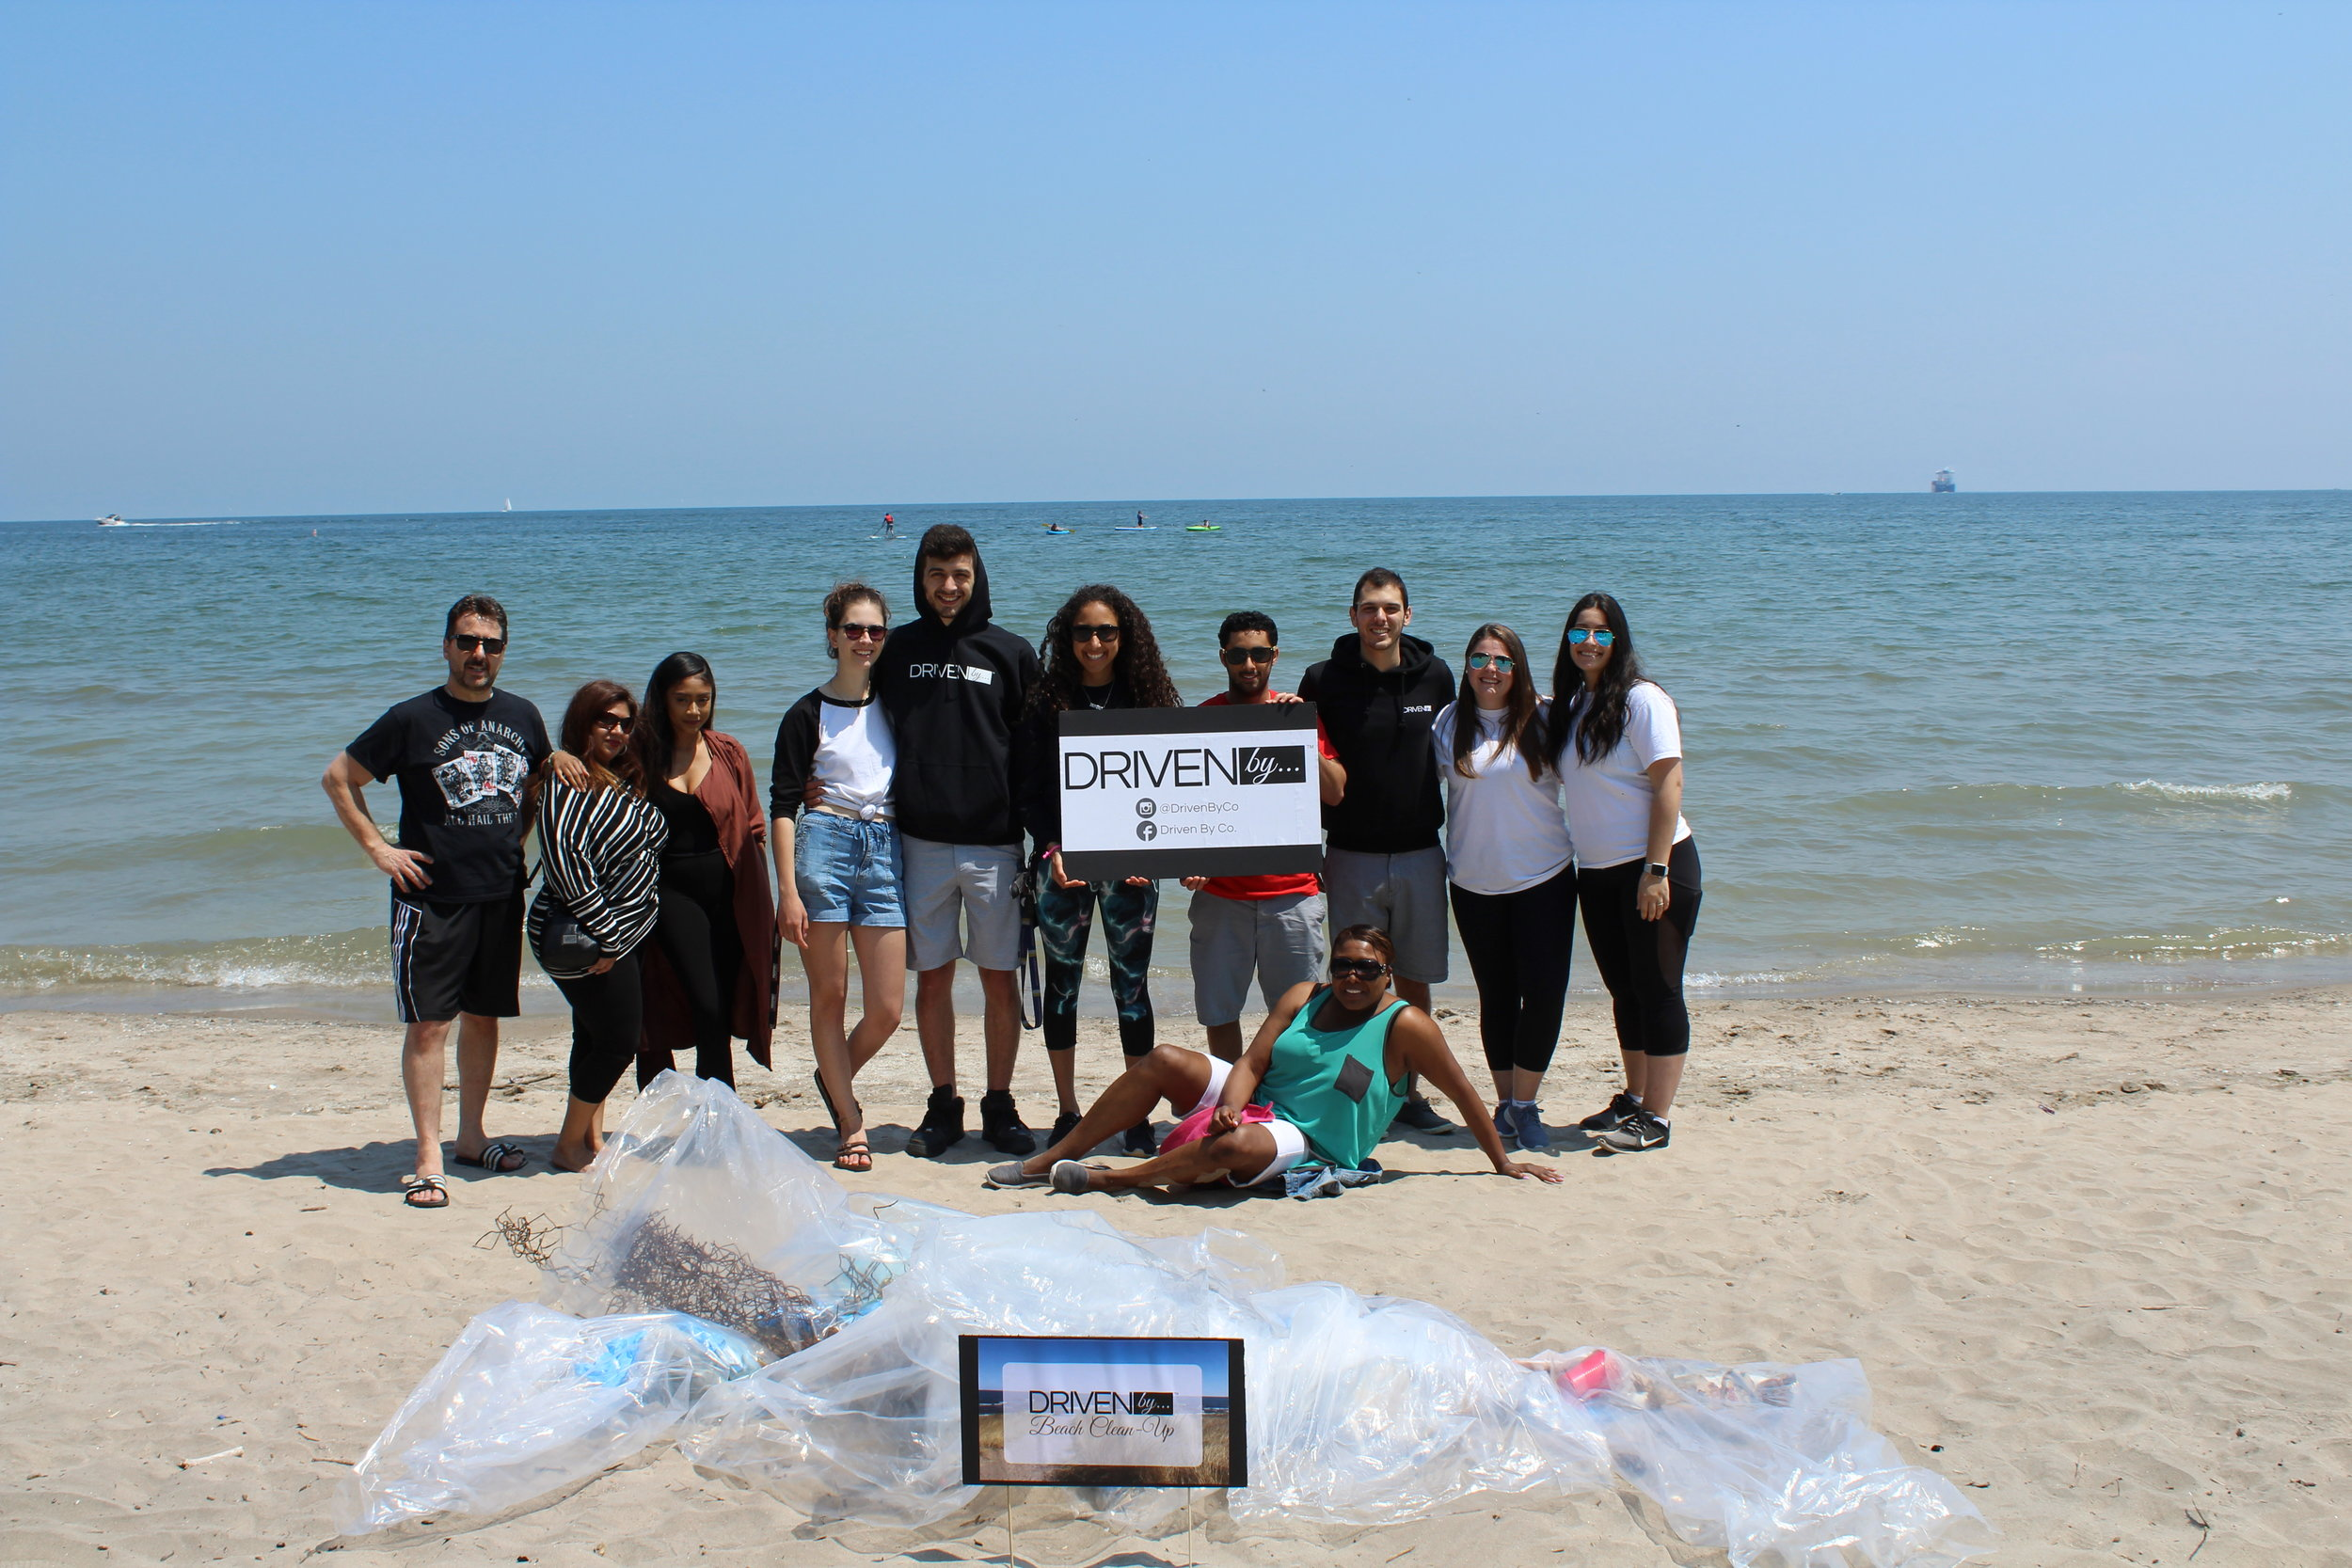 DrivenBy... Beach Clean-Up - Working as a team, we collected over 50lbs of trash on Burlington Beach on May 27th 2018. We made a huge statement on the beach as many sun bathers asked questions and commended us for what we were doing. We really don't realize how our waste is all around us!All the volunteers who were involved, explained that doing this exercise was really eye opening for them. They felt accomplished and energized, that they were able to make a tangible environmental impact.